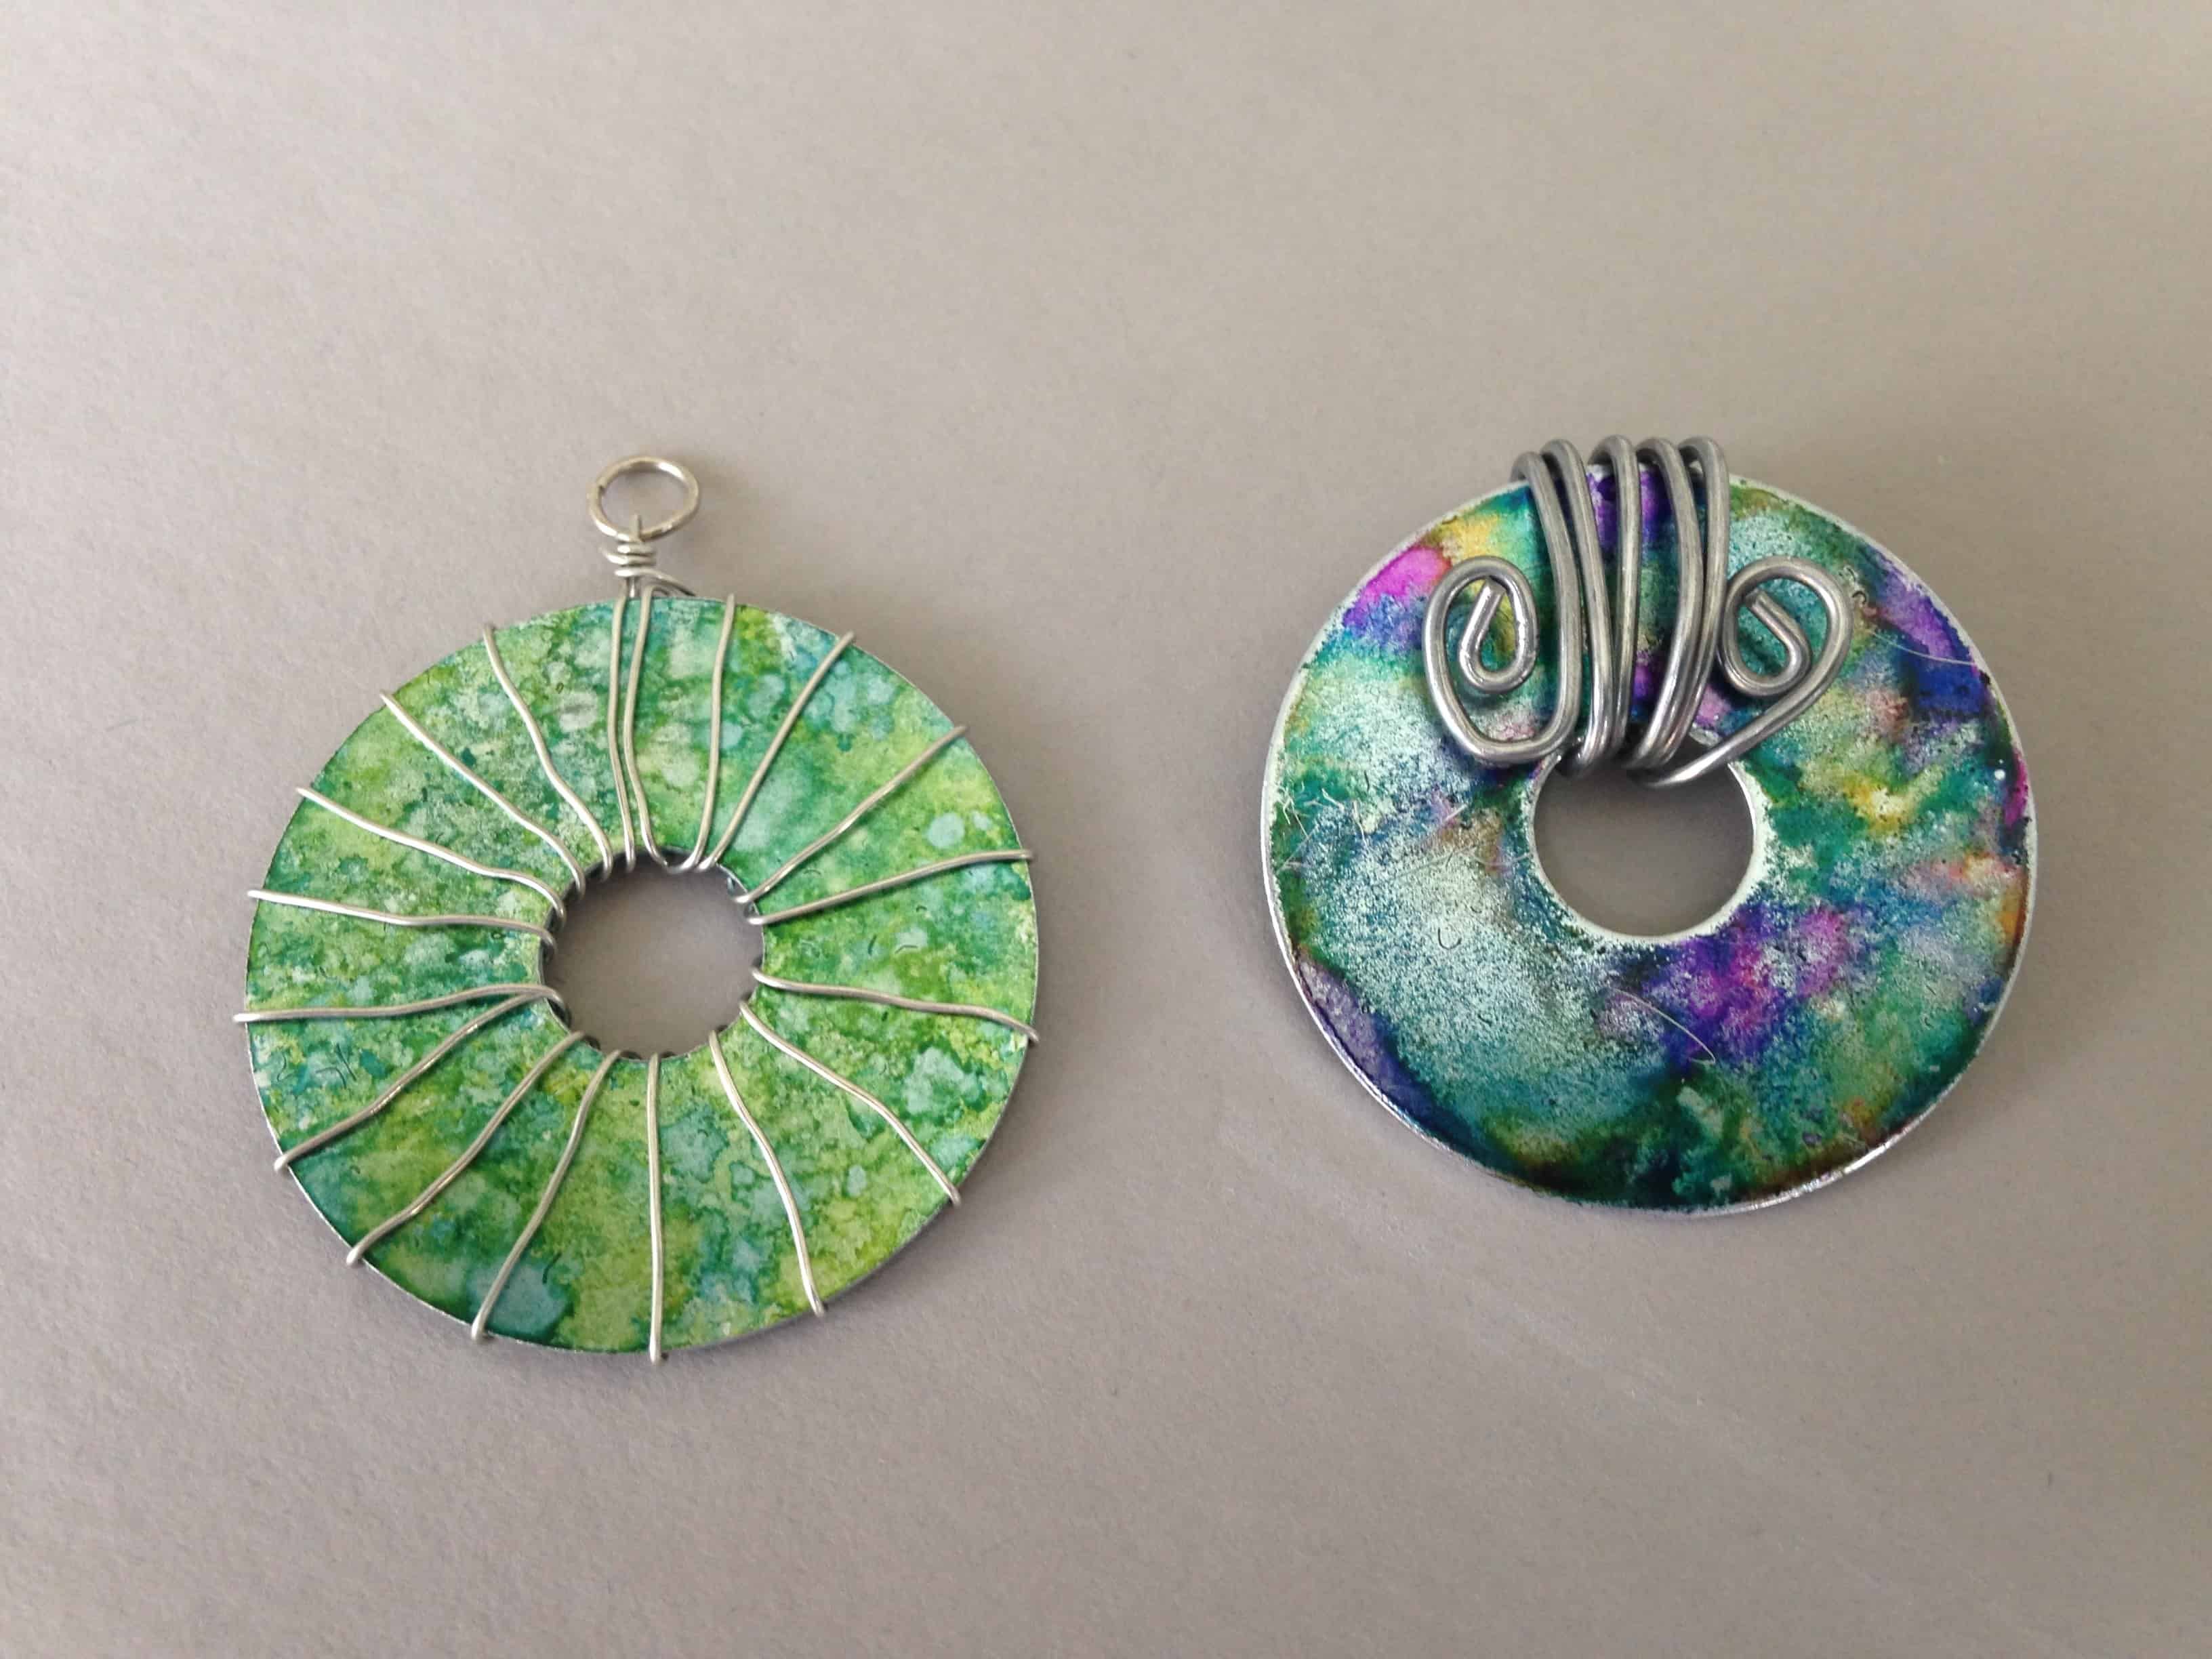 Alcohol ink washer and bent wire design necklaces